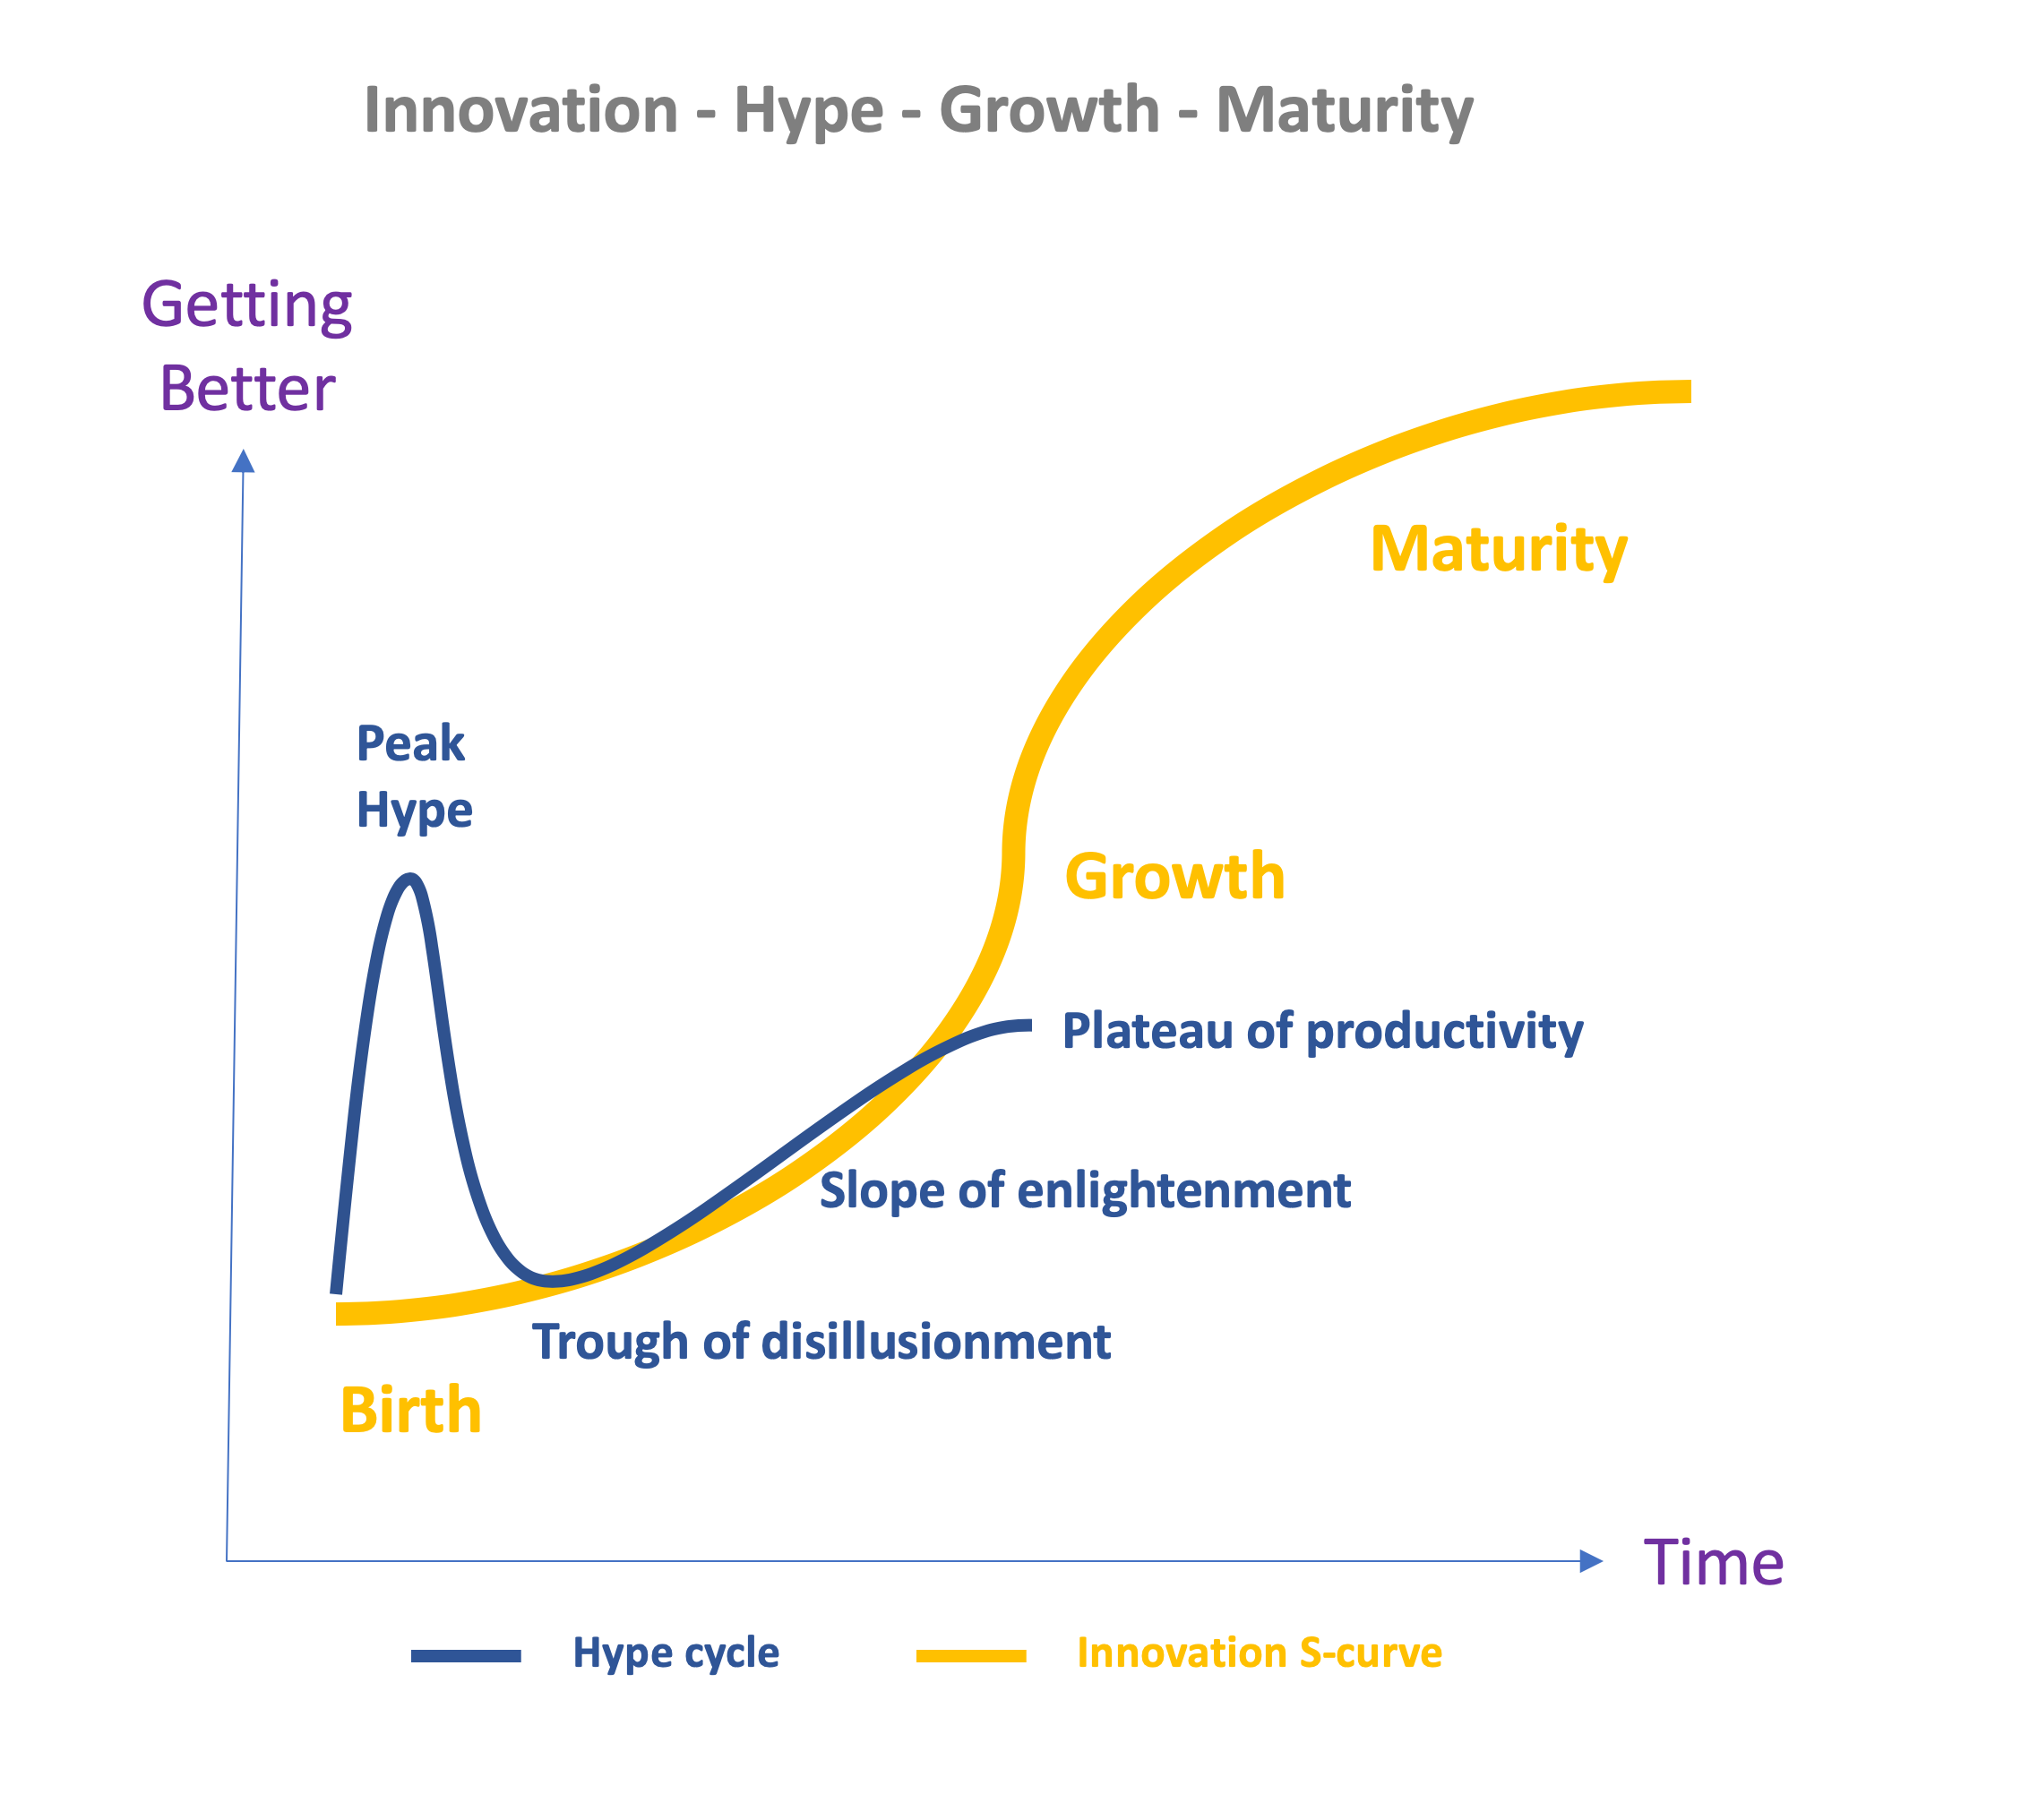 AI innovation and hype graph